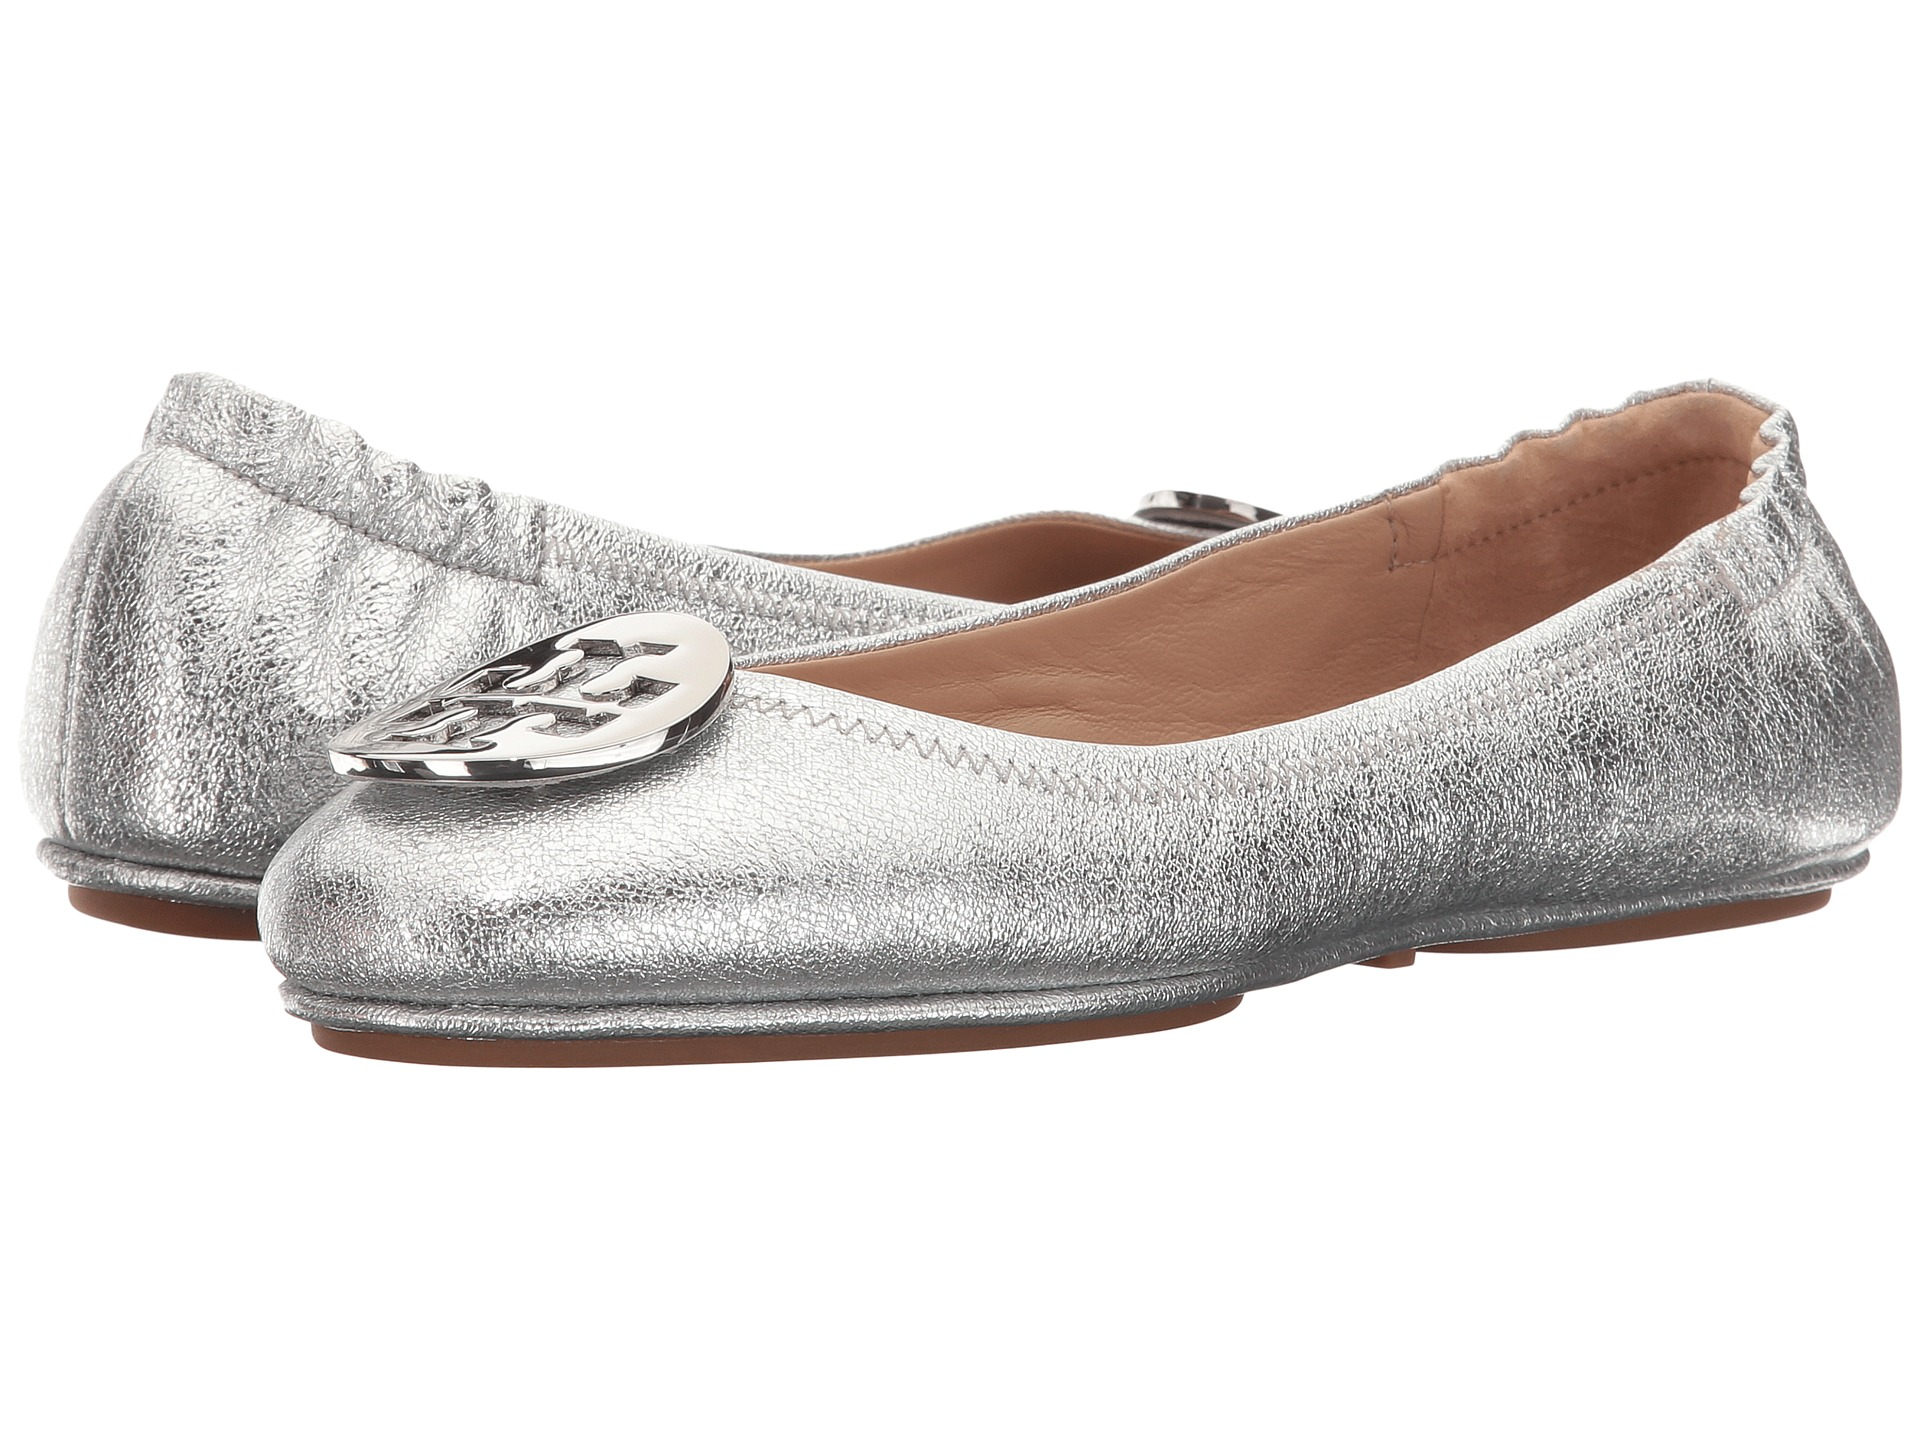 Tory Burch Minnie Travel Ballet At Zappos